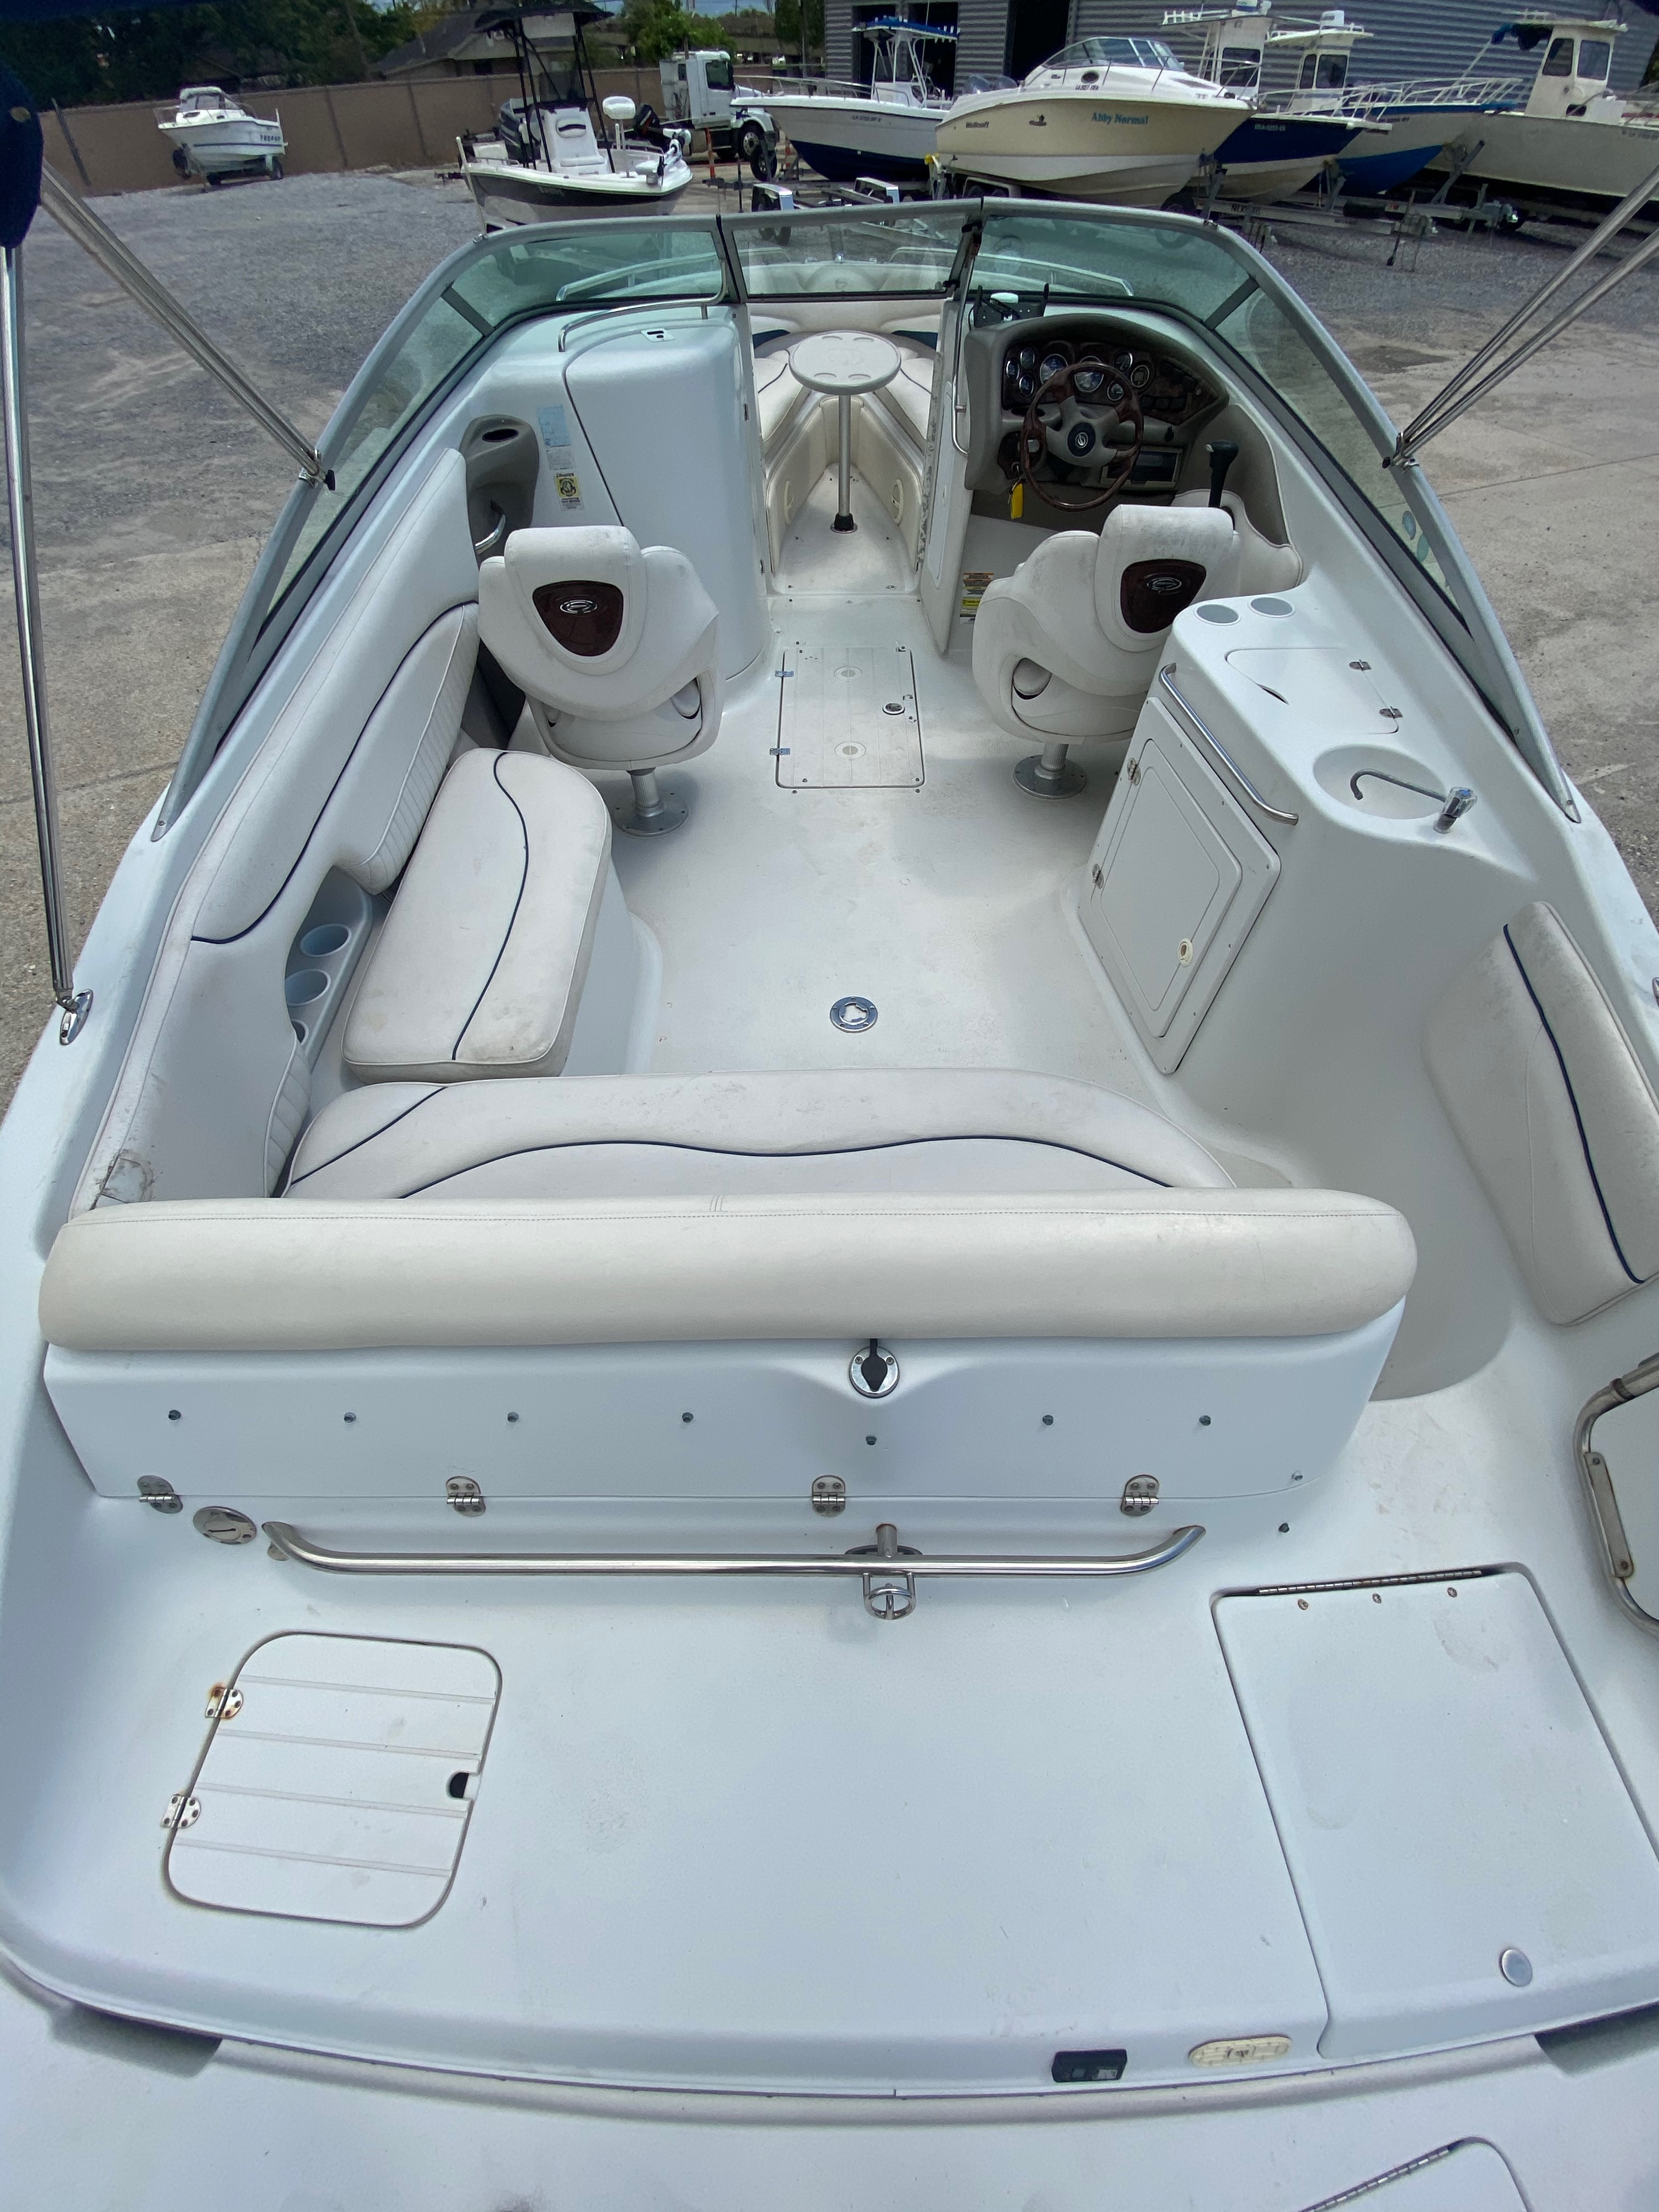 2005 Crownline boat for sale, model of the boat is 236 & Image # 12 of 17